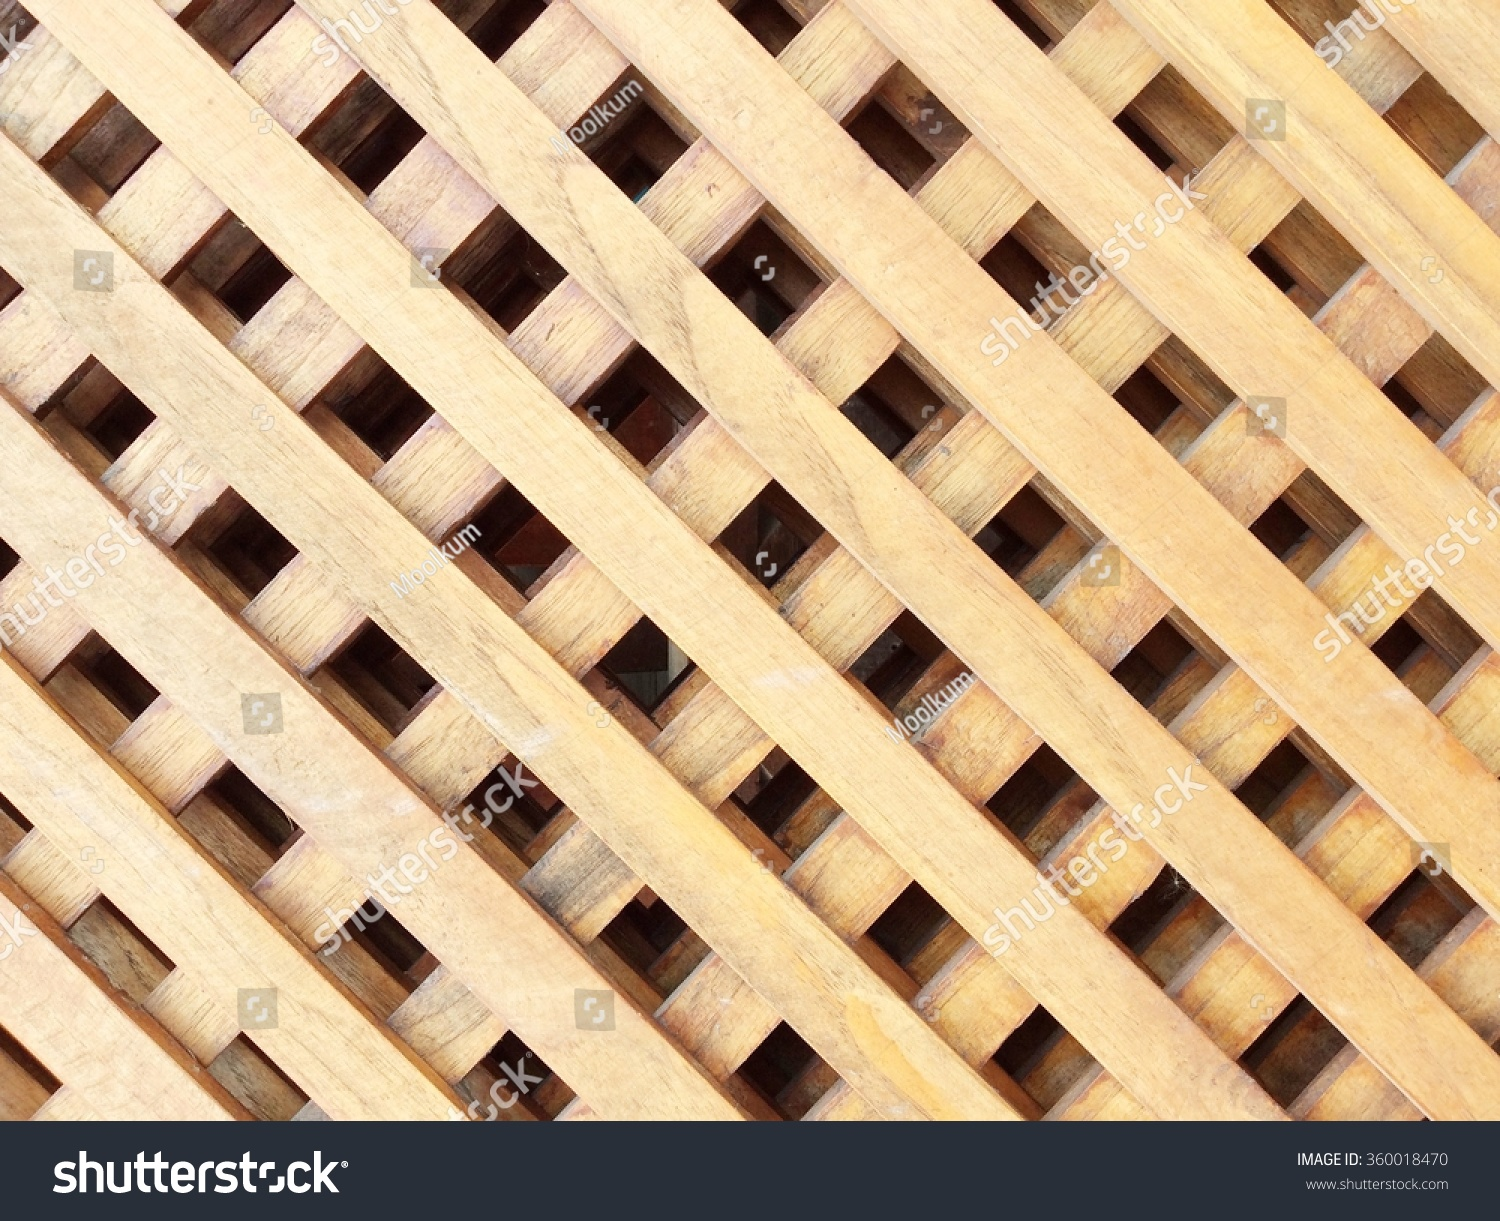 yellow wooden grille with diamond-shaped cells in the | EZ Canvas